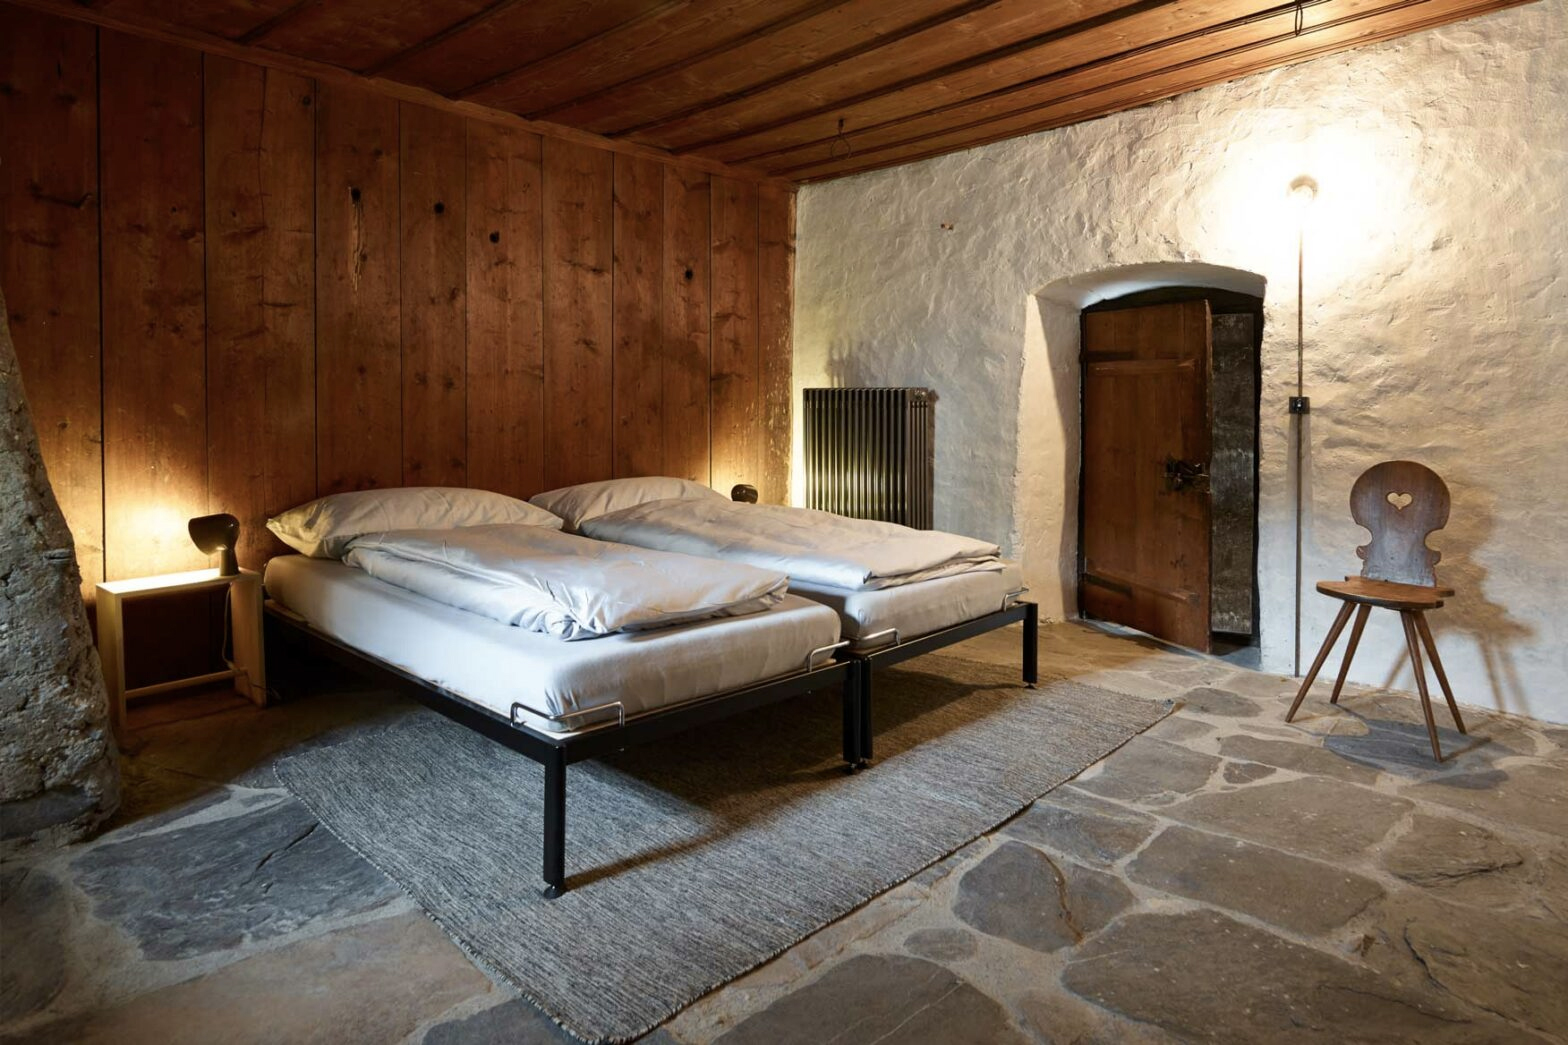 Swiss mountain retreat Türalihus whisks guests back through the centuries